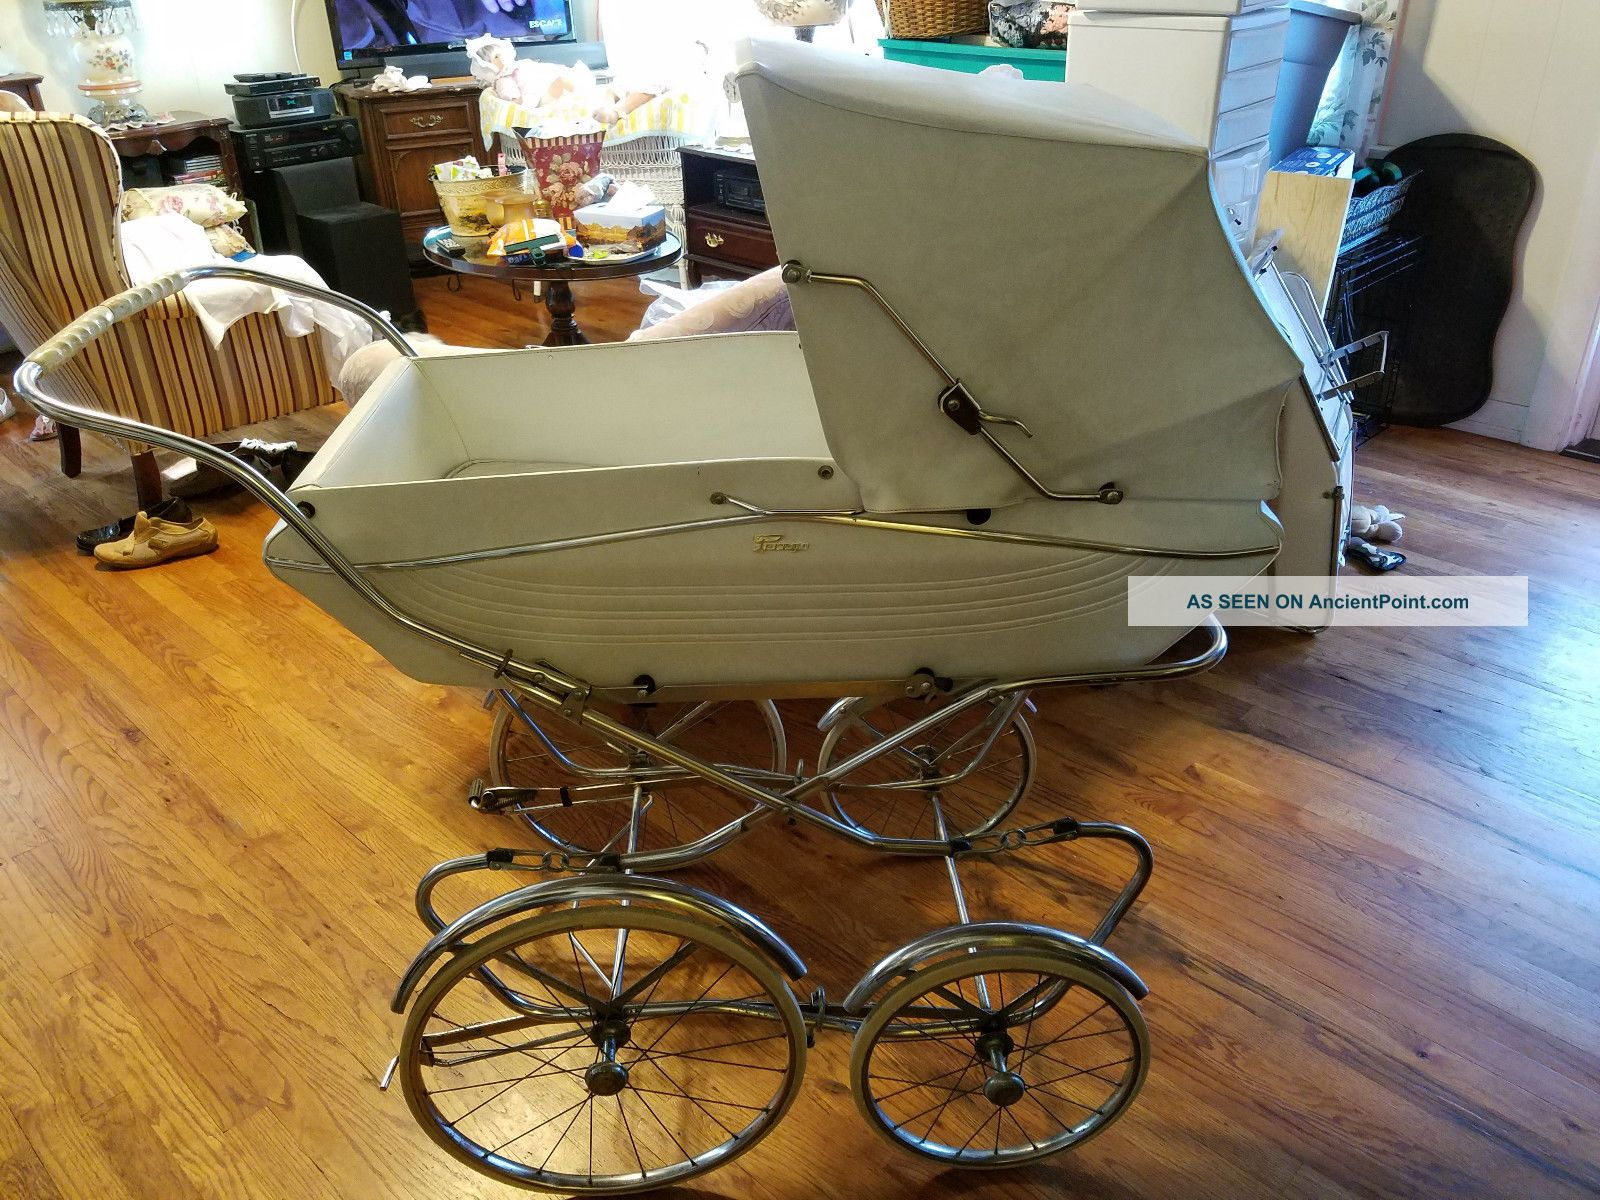 W@w Vtg Italian Perego Pram Carriage & Stroller Combo Baby Carriages & Buggies photo